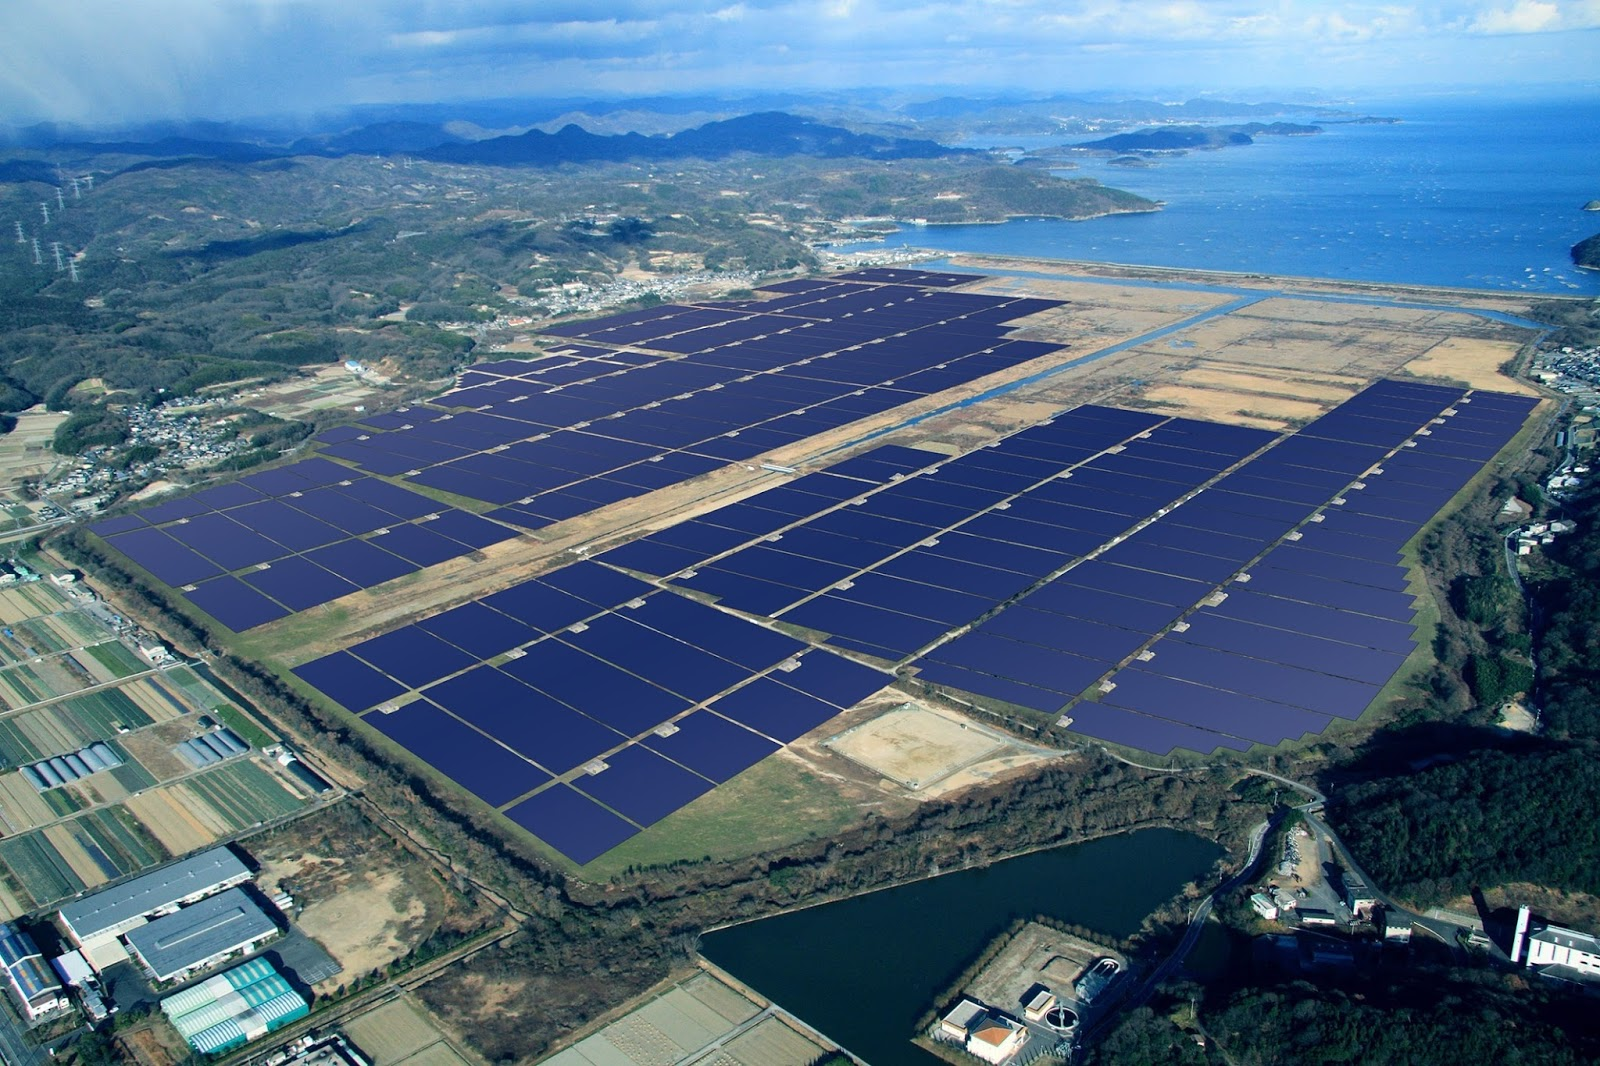 Japan Prepares Rules To Recycle Photovoltaic Panels Reve